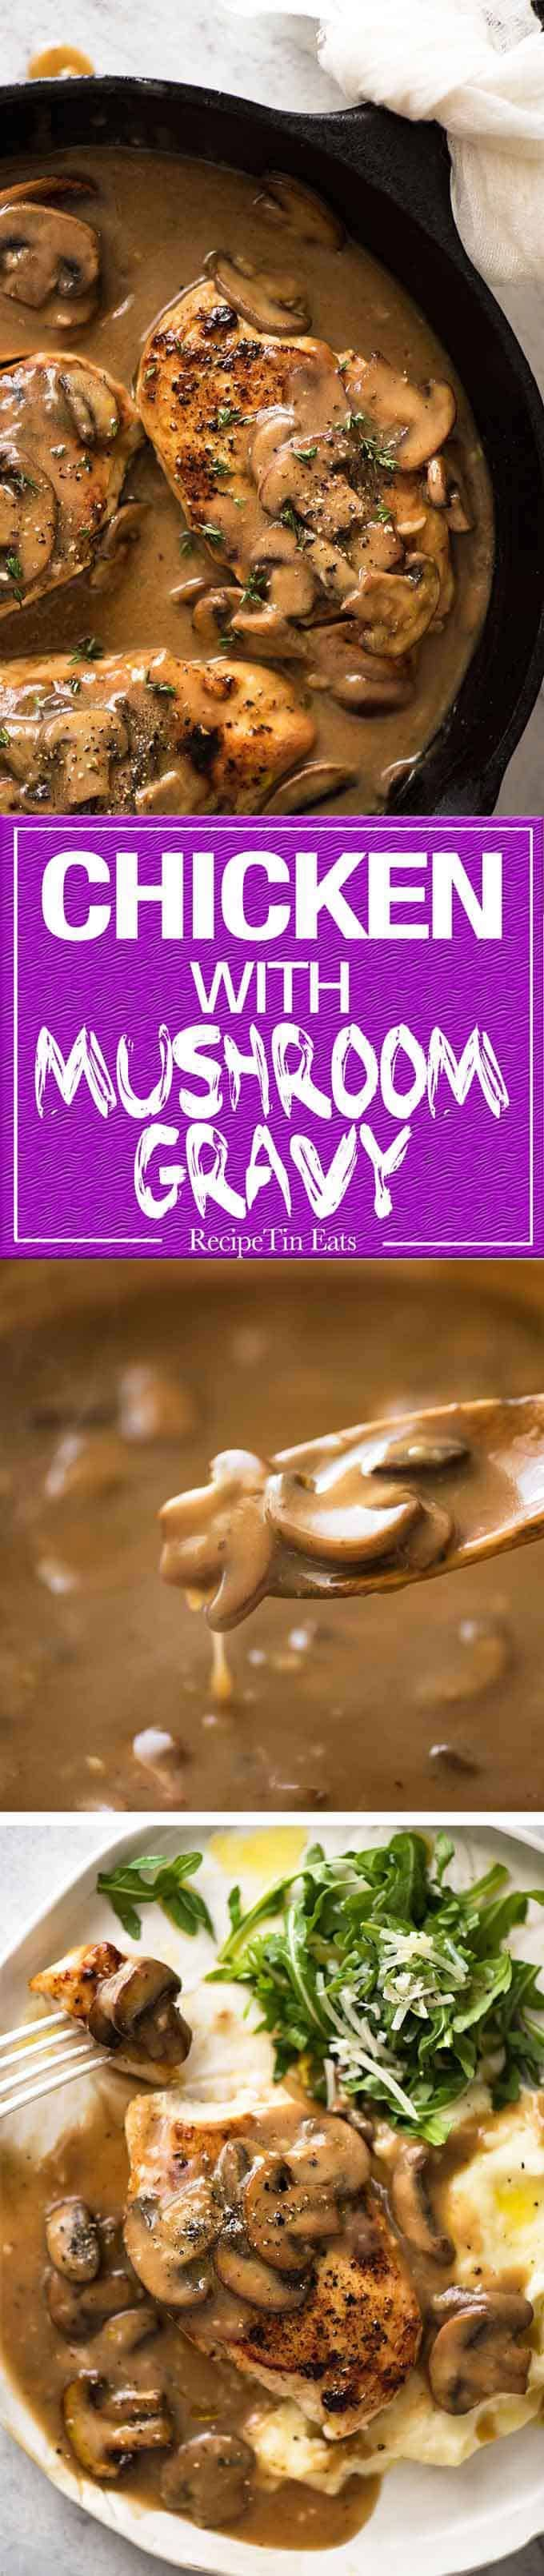 Chicken with Mushroom Gravy A fabulous quick midweek meal - juicy pan seared Chicken with Mushroom Gravy.